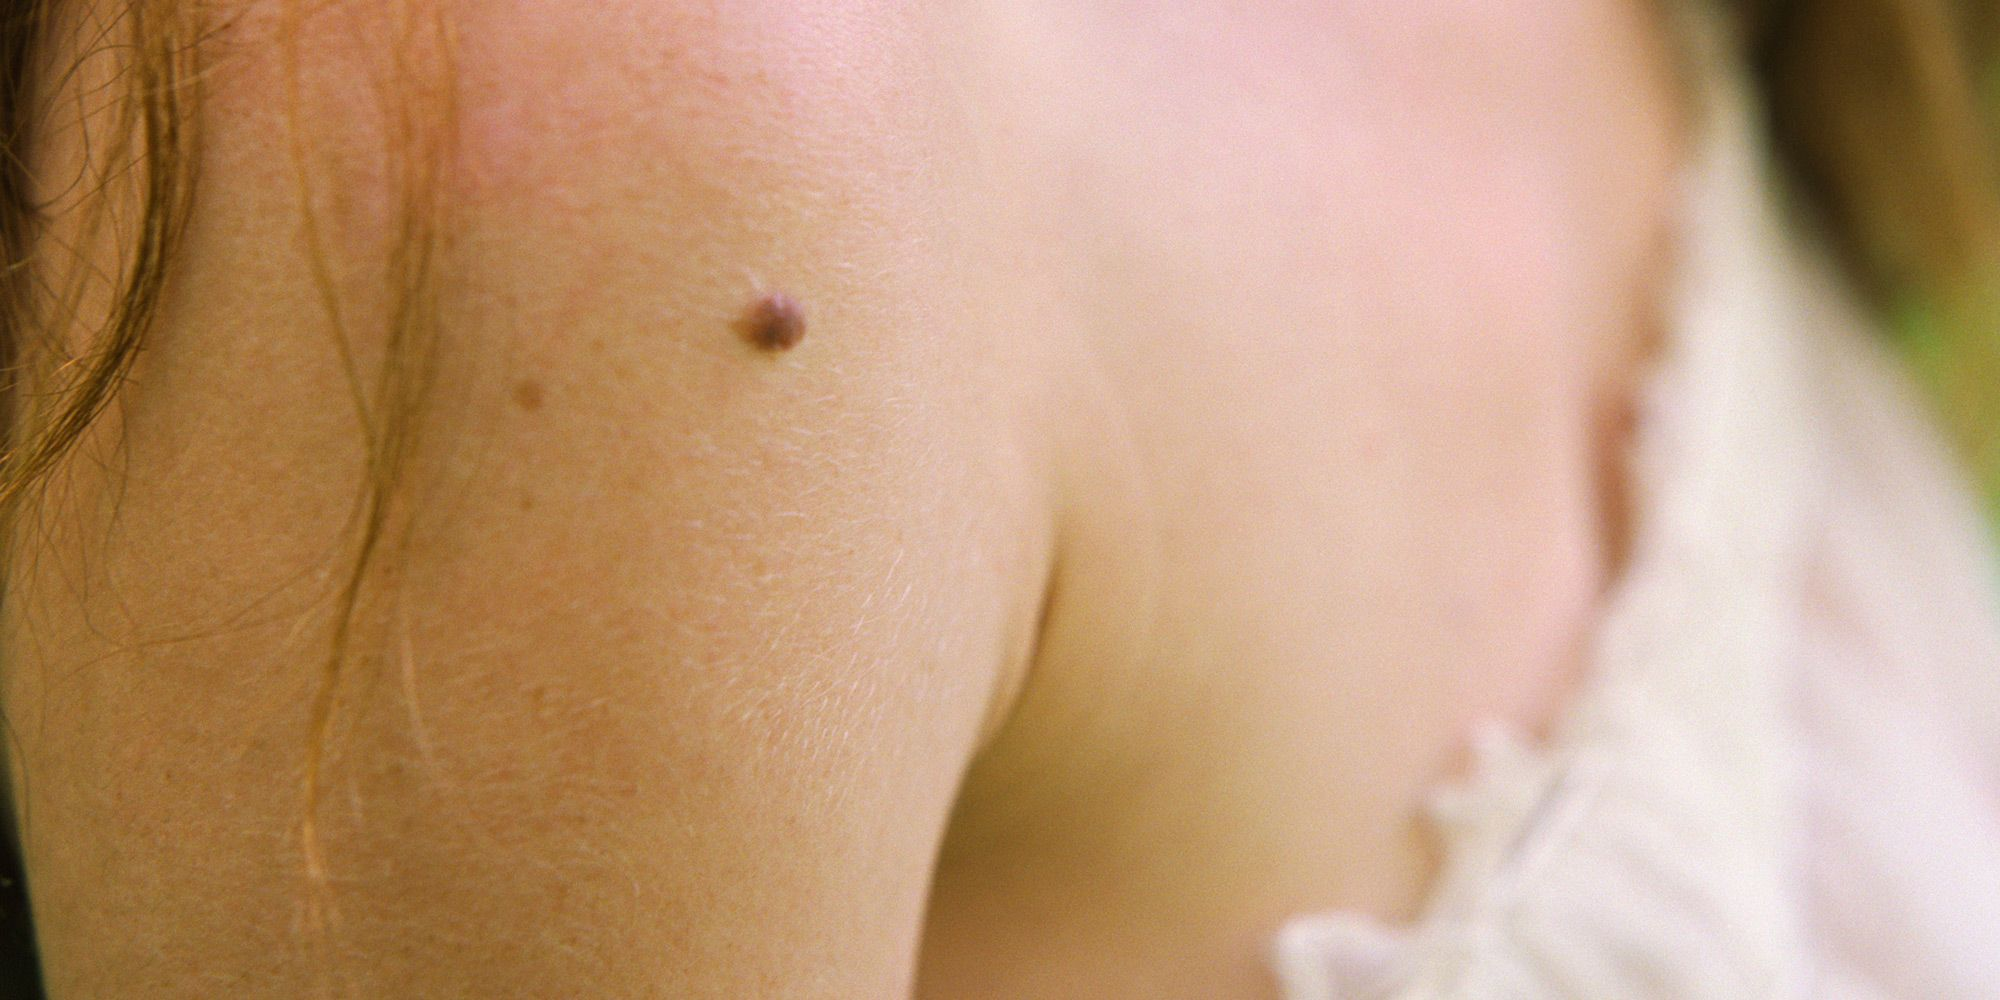 mole, moles, skin cancer